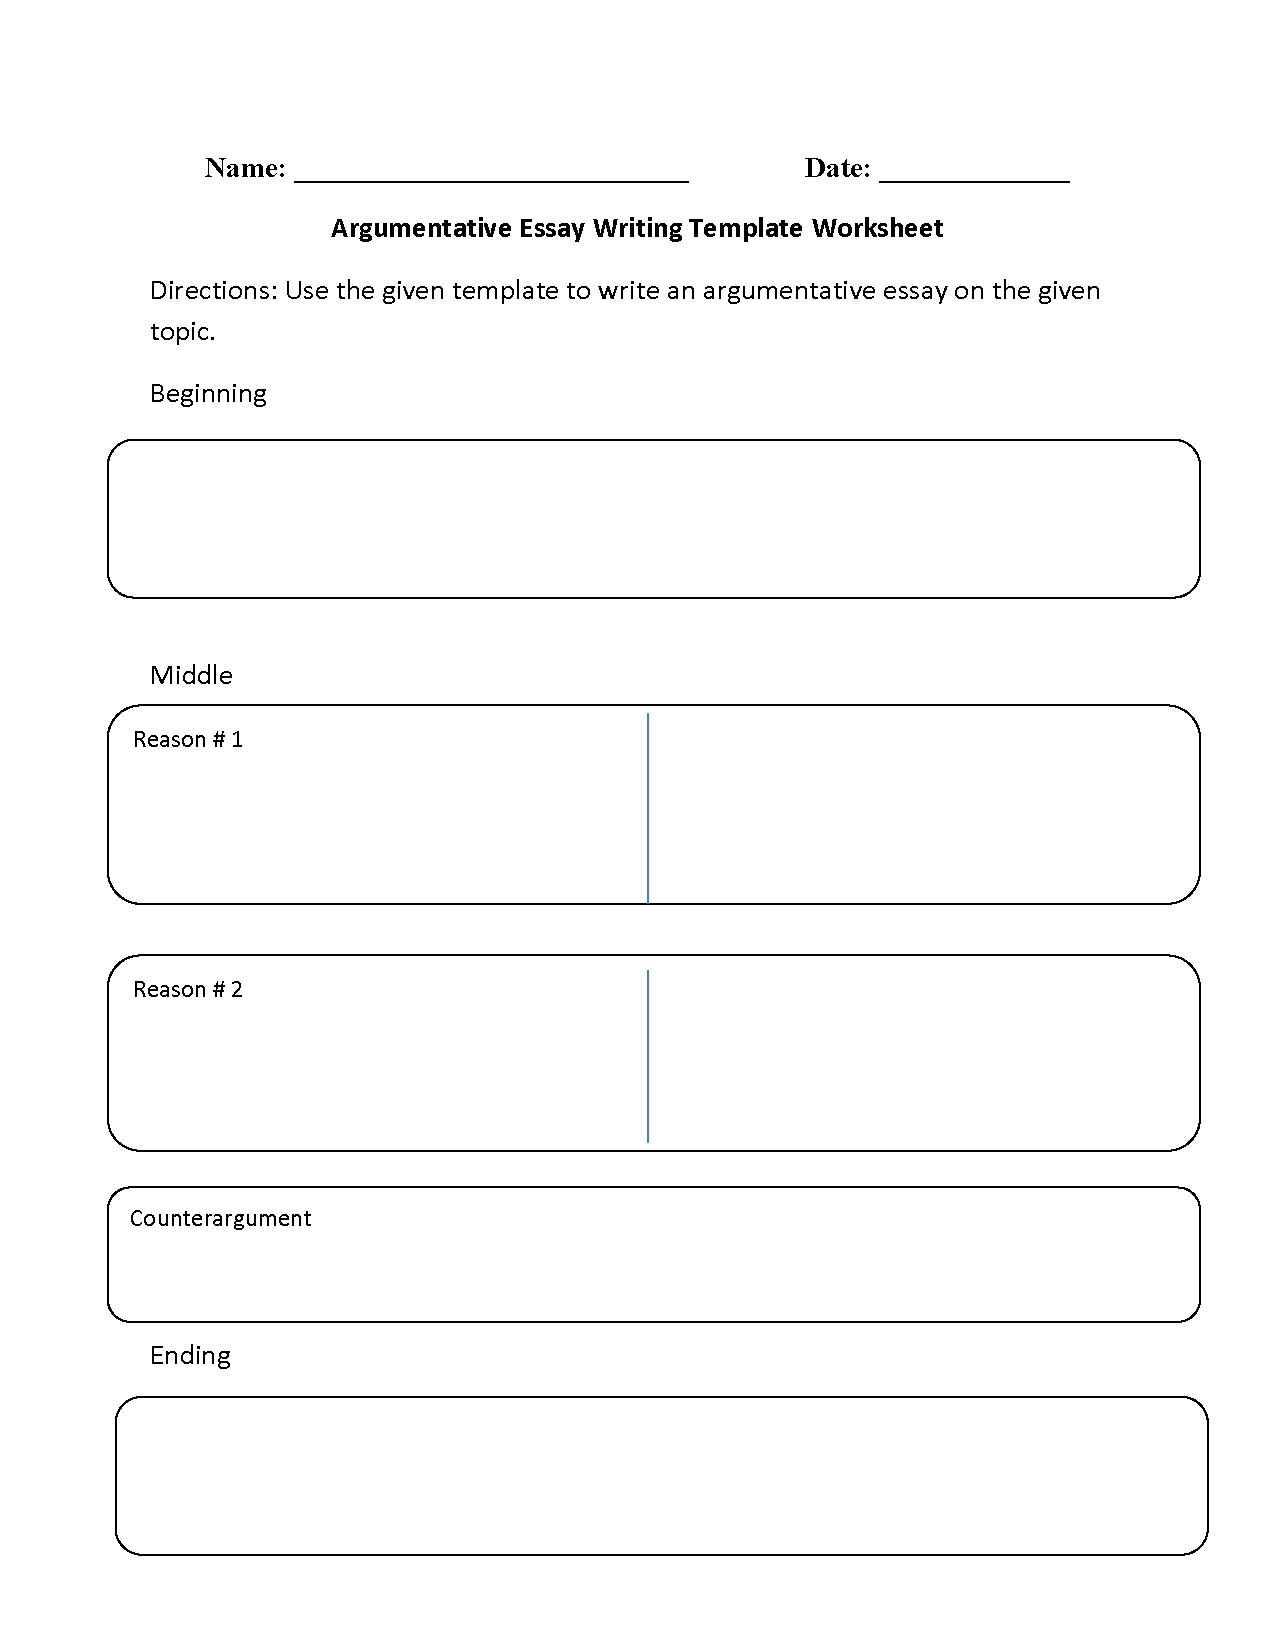 Argumentative Essay Writing Template Worksheet